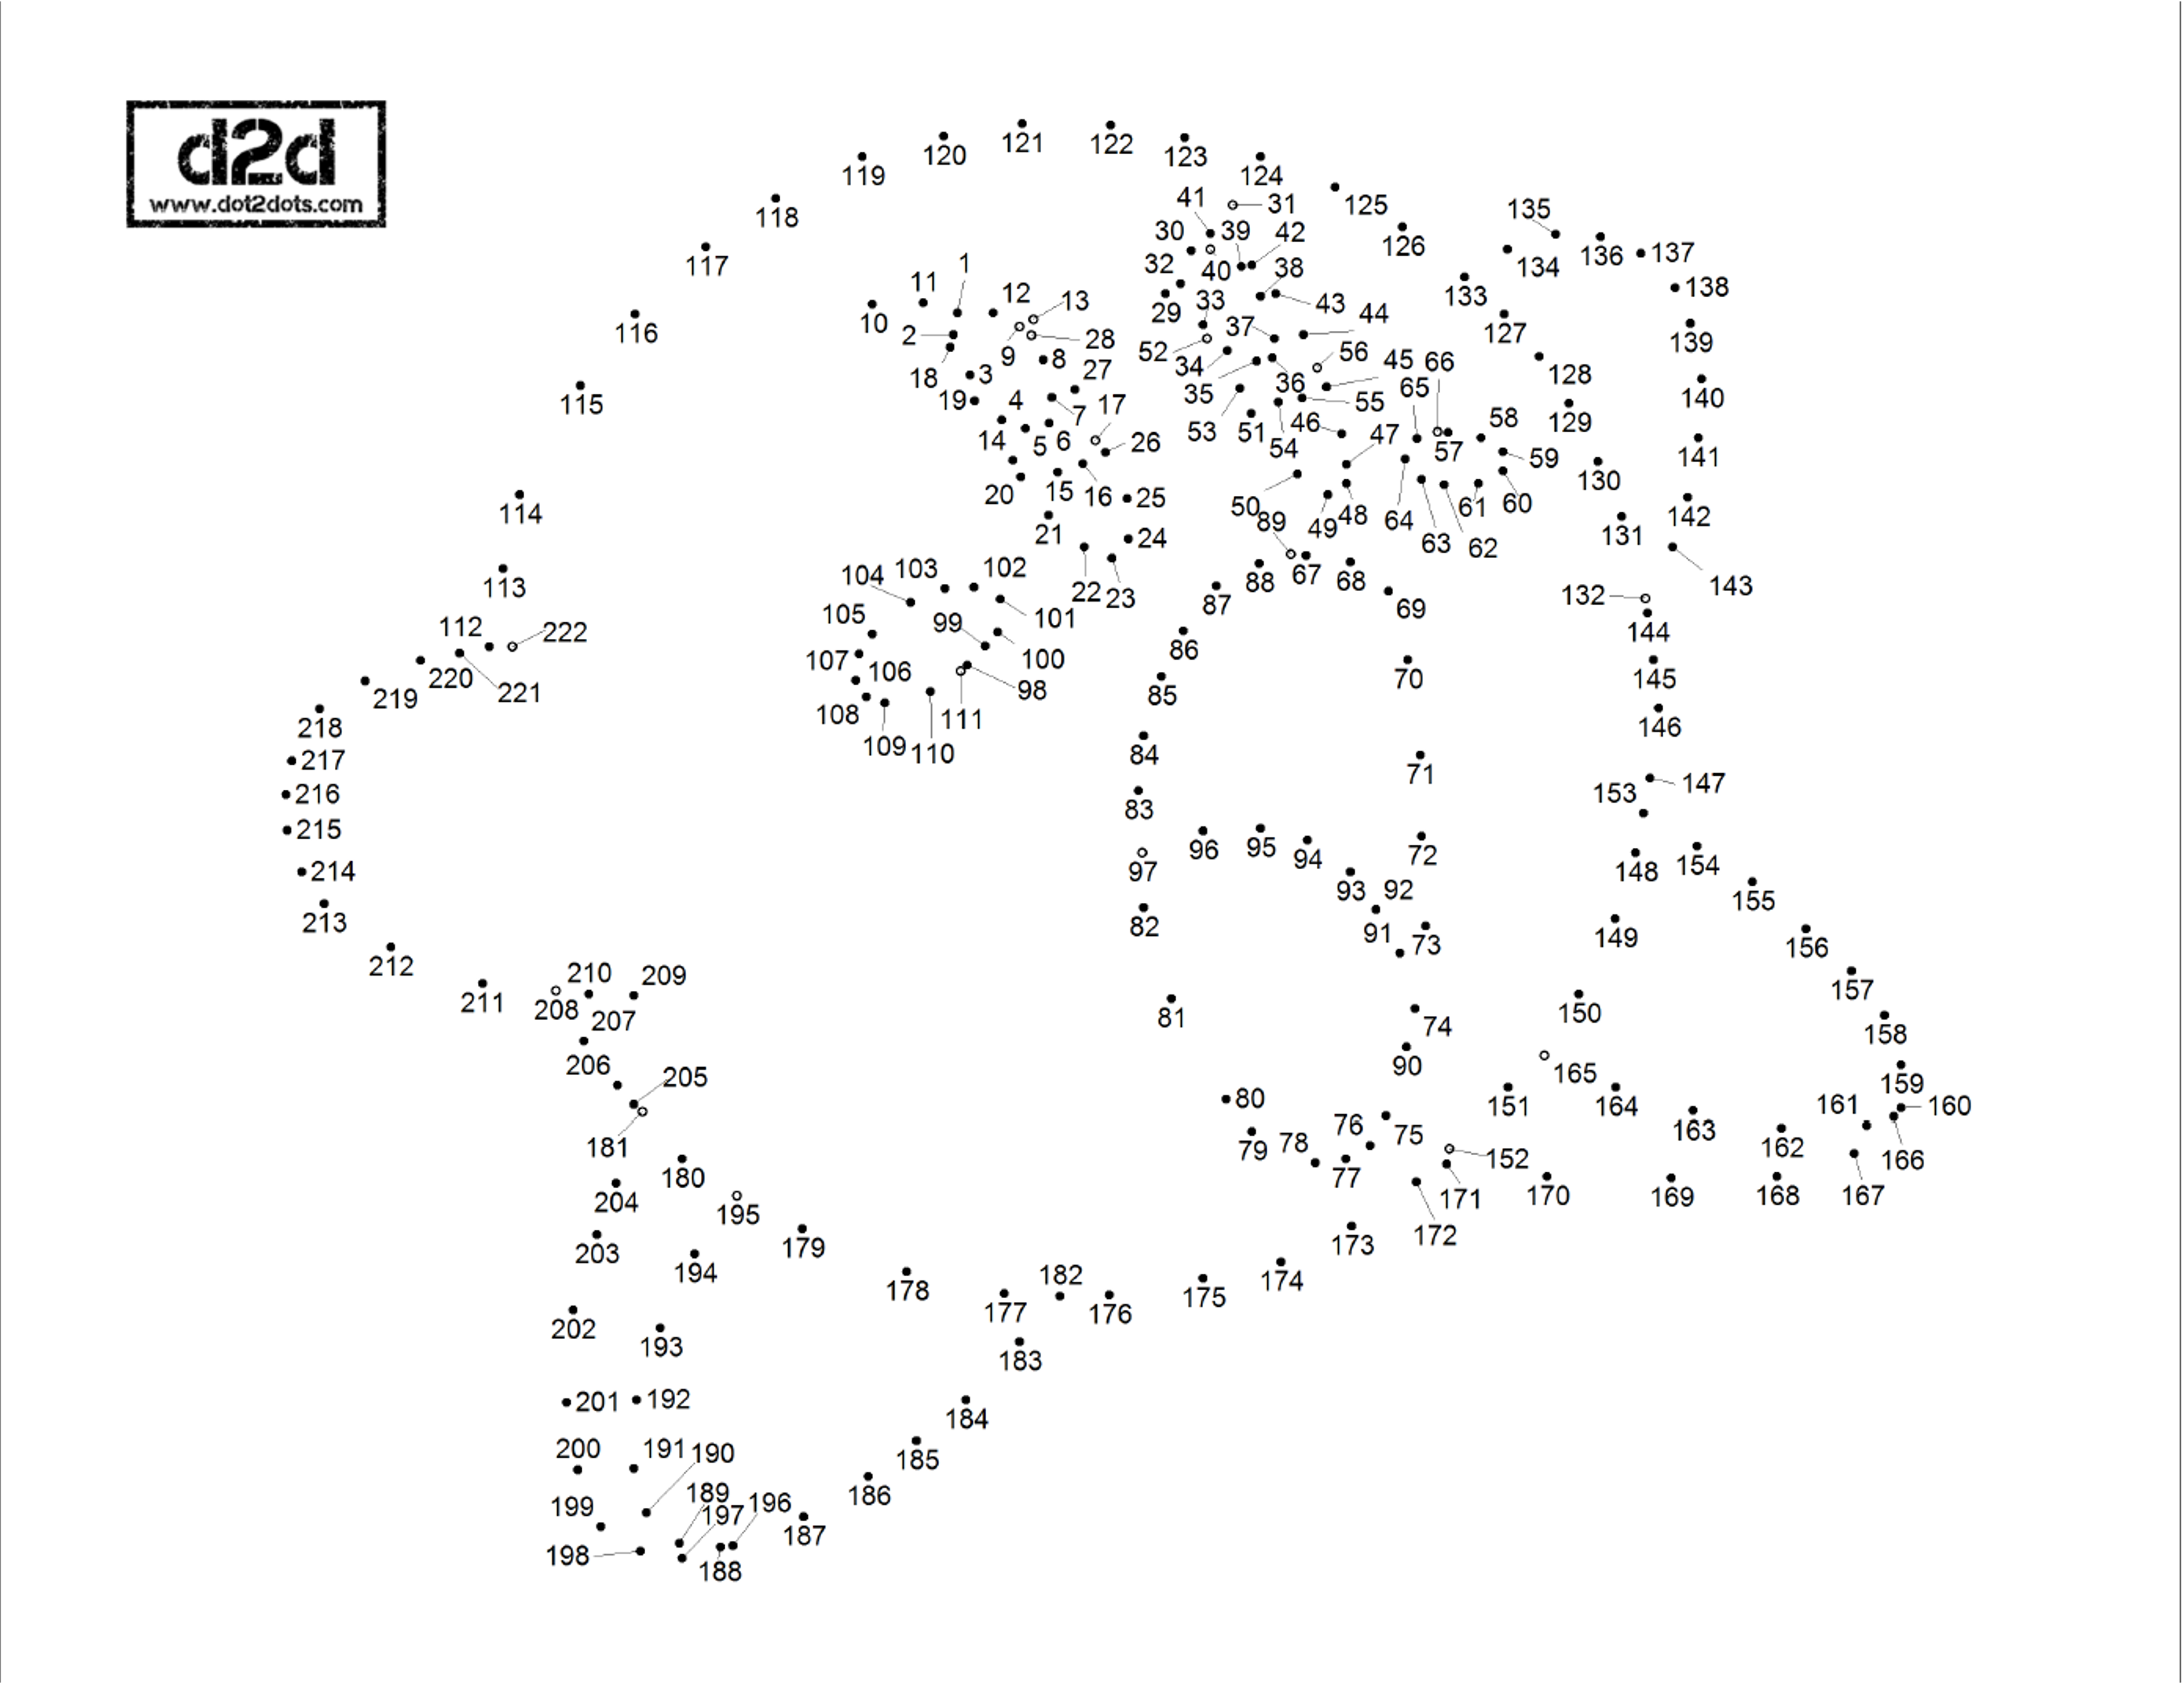 Connect The Dots Video Game Themed Dot To Dot More At